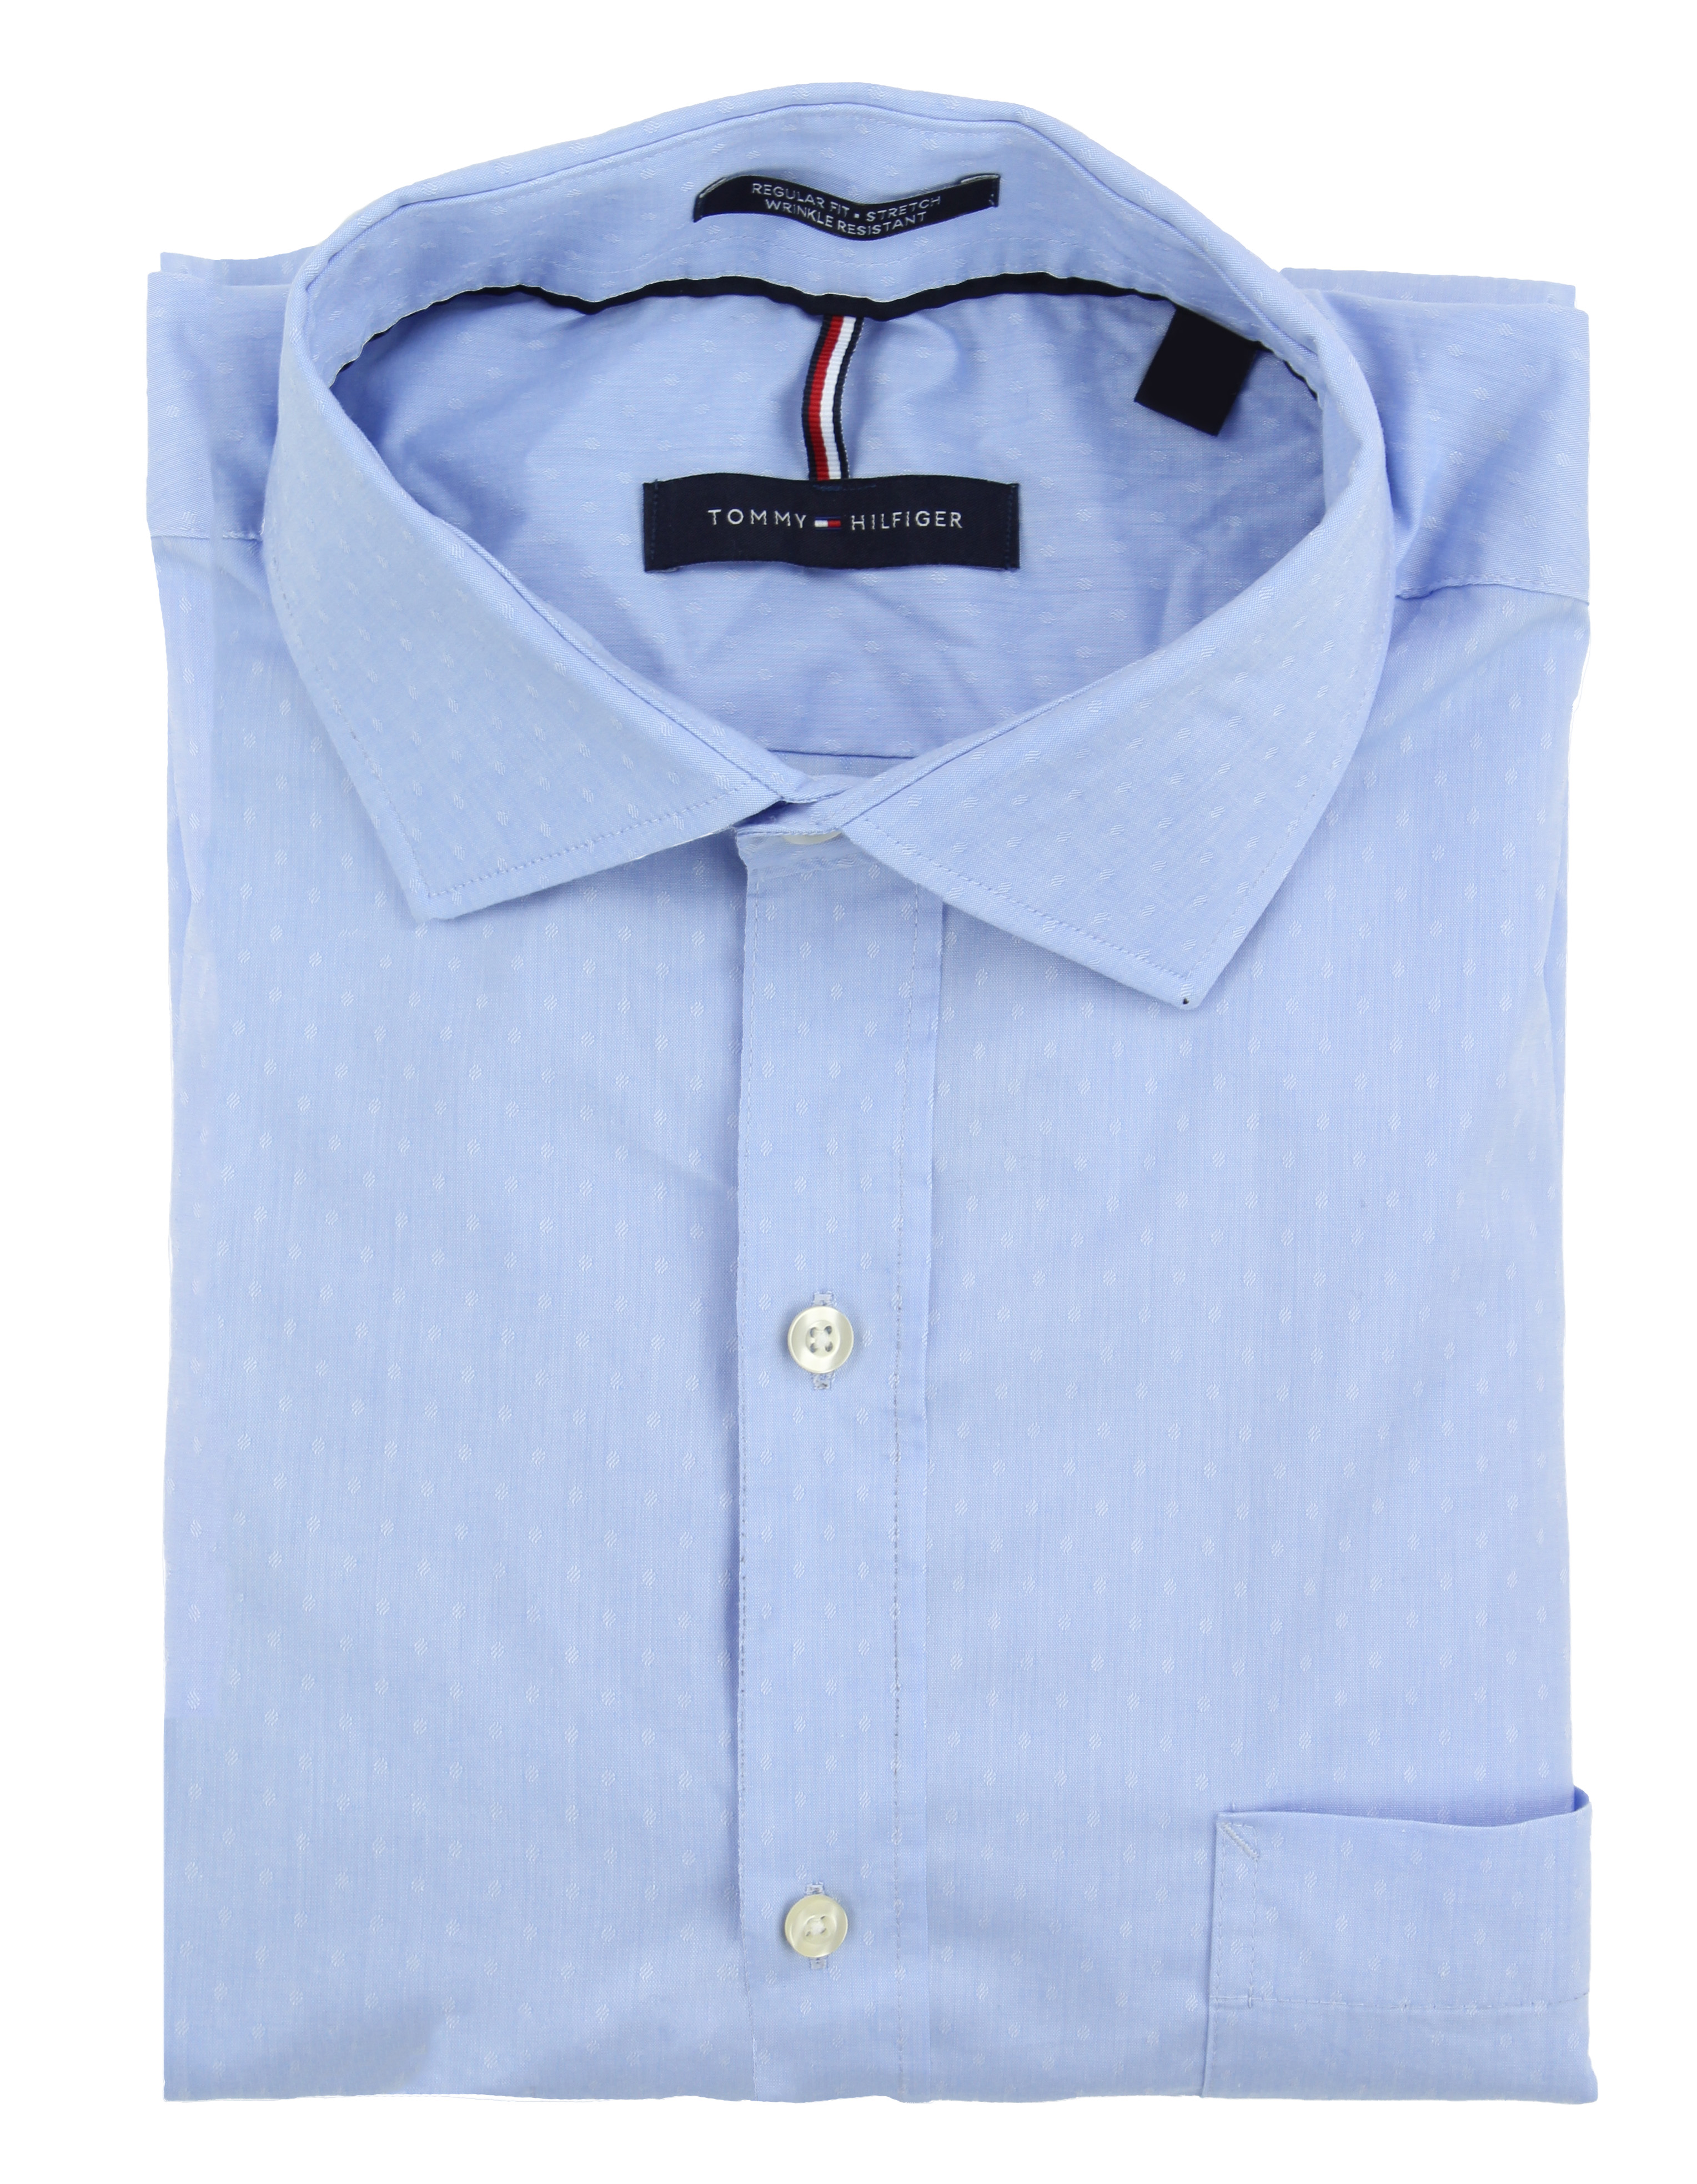 Tommy-Hilfiger-Mens-Long-Sleeve-Regular-Fit-Dress-Shirt miniature 3